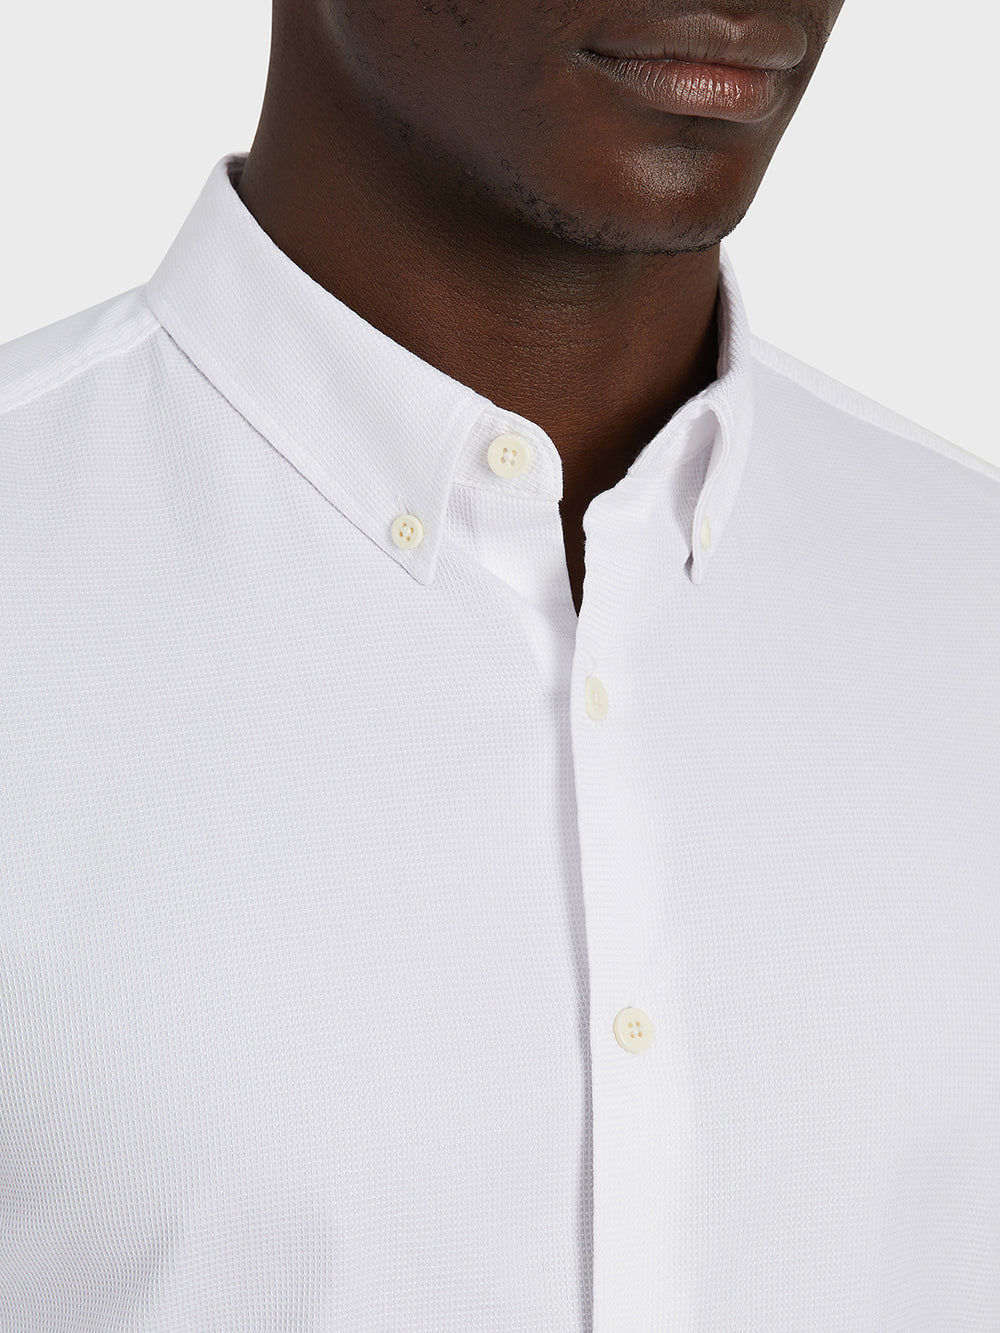 ONS Clothing Men's shirt in WHITE black friday deals